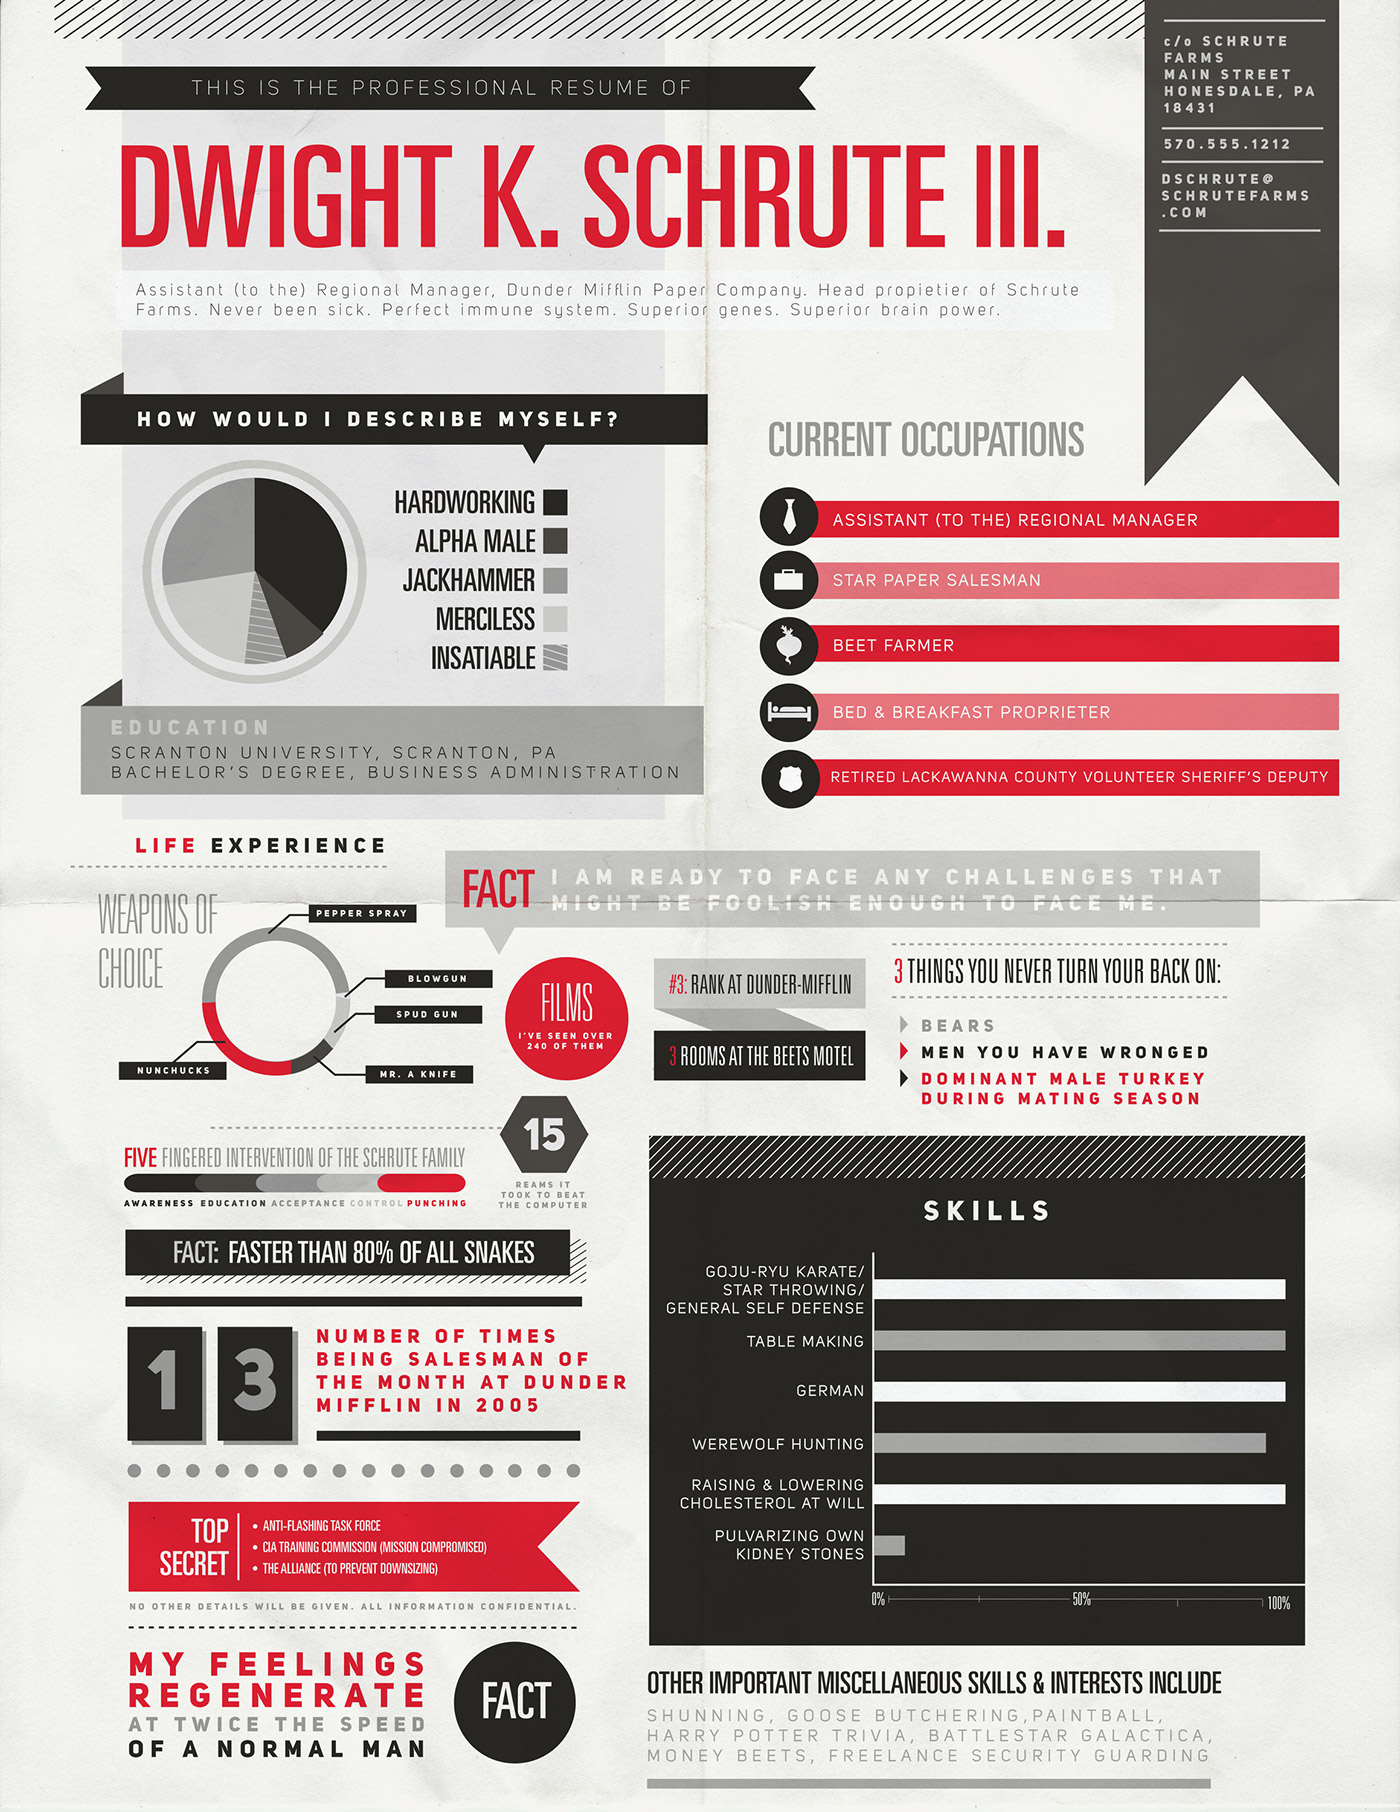 dwight schrute u0026 39 s resume for fakeanything com on behance